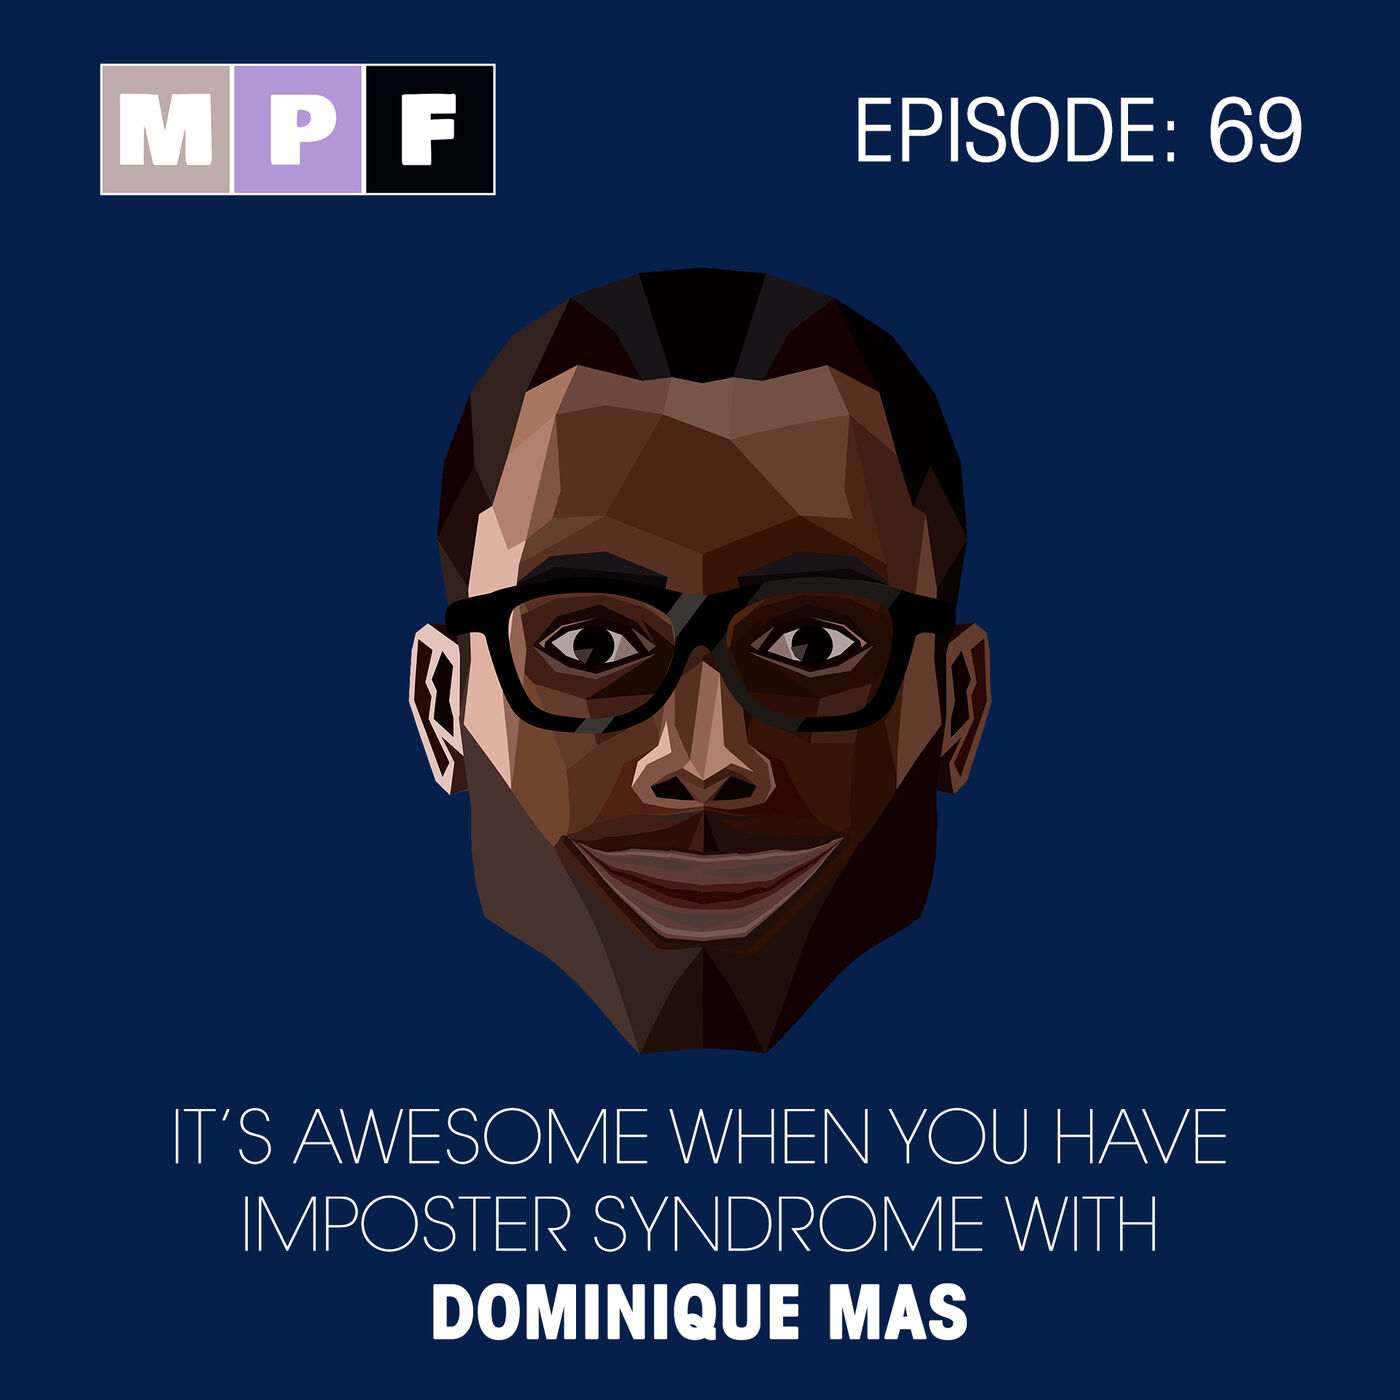 It's Awesome when you have Imposter Syndrome with Dominique Mas